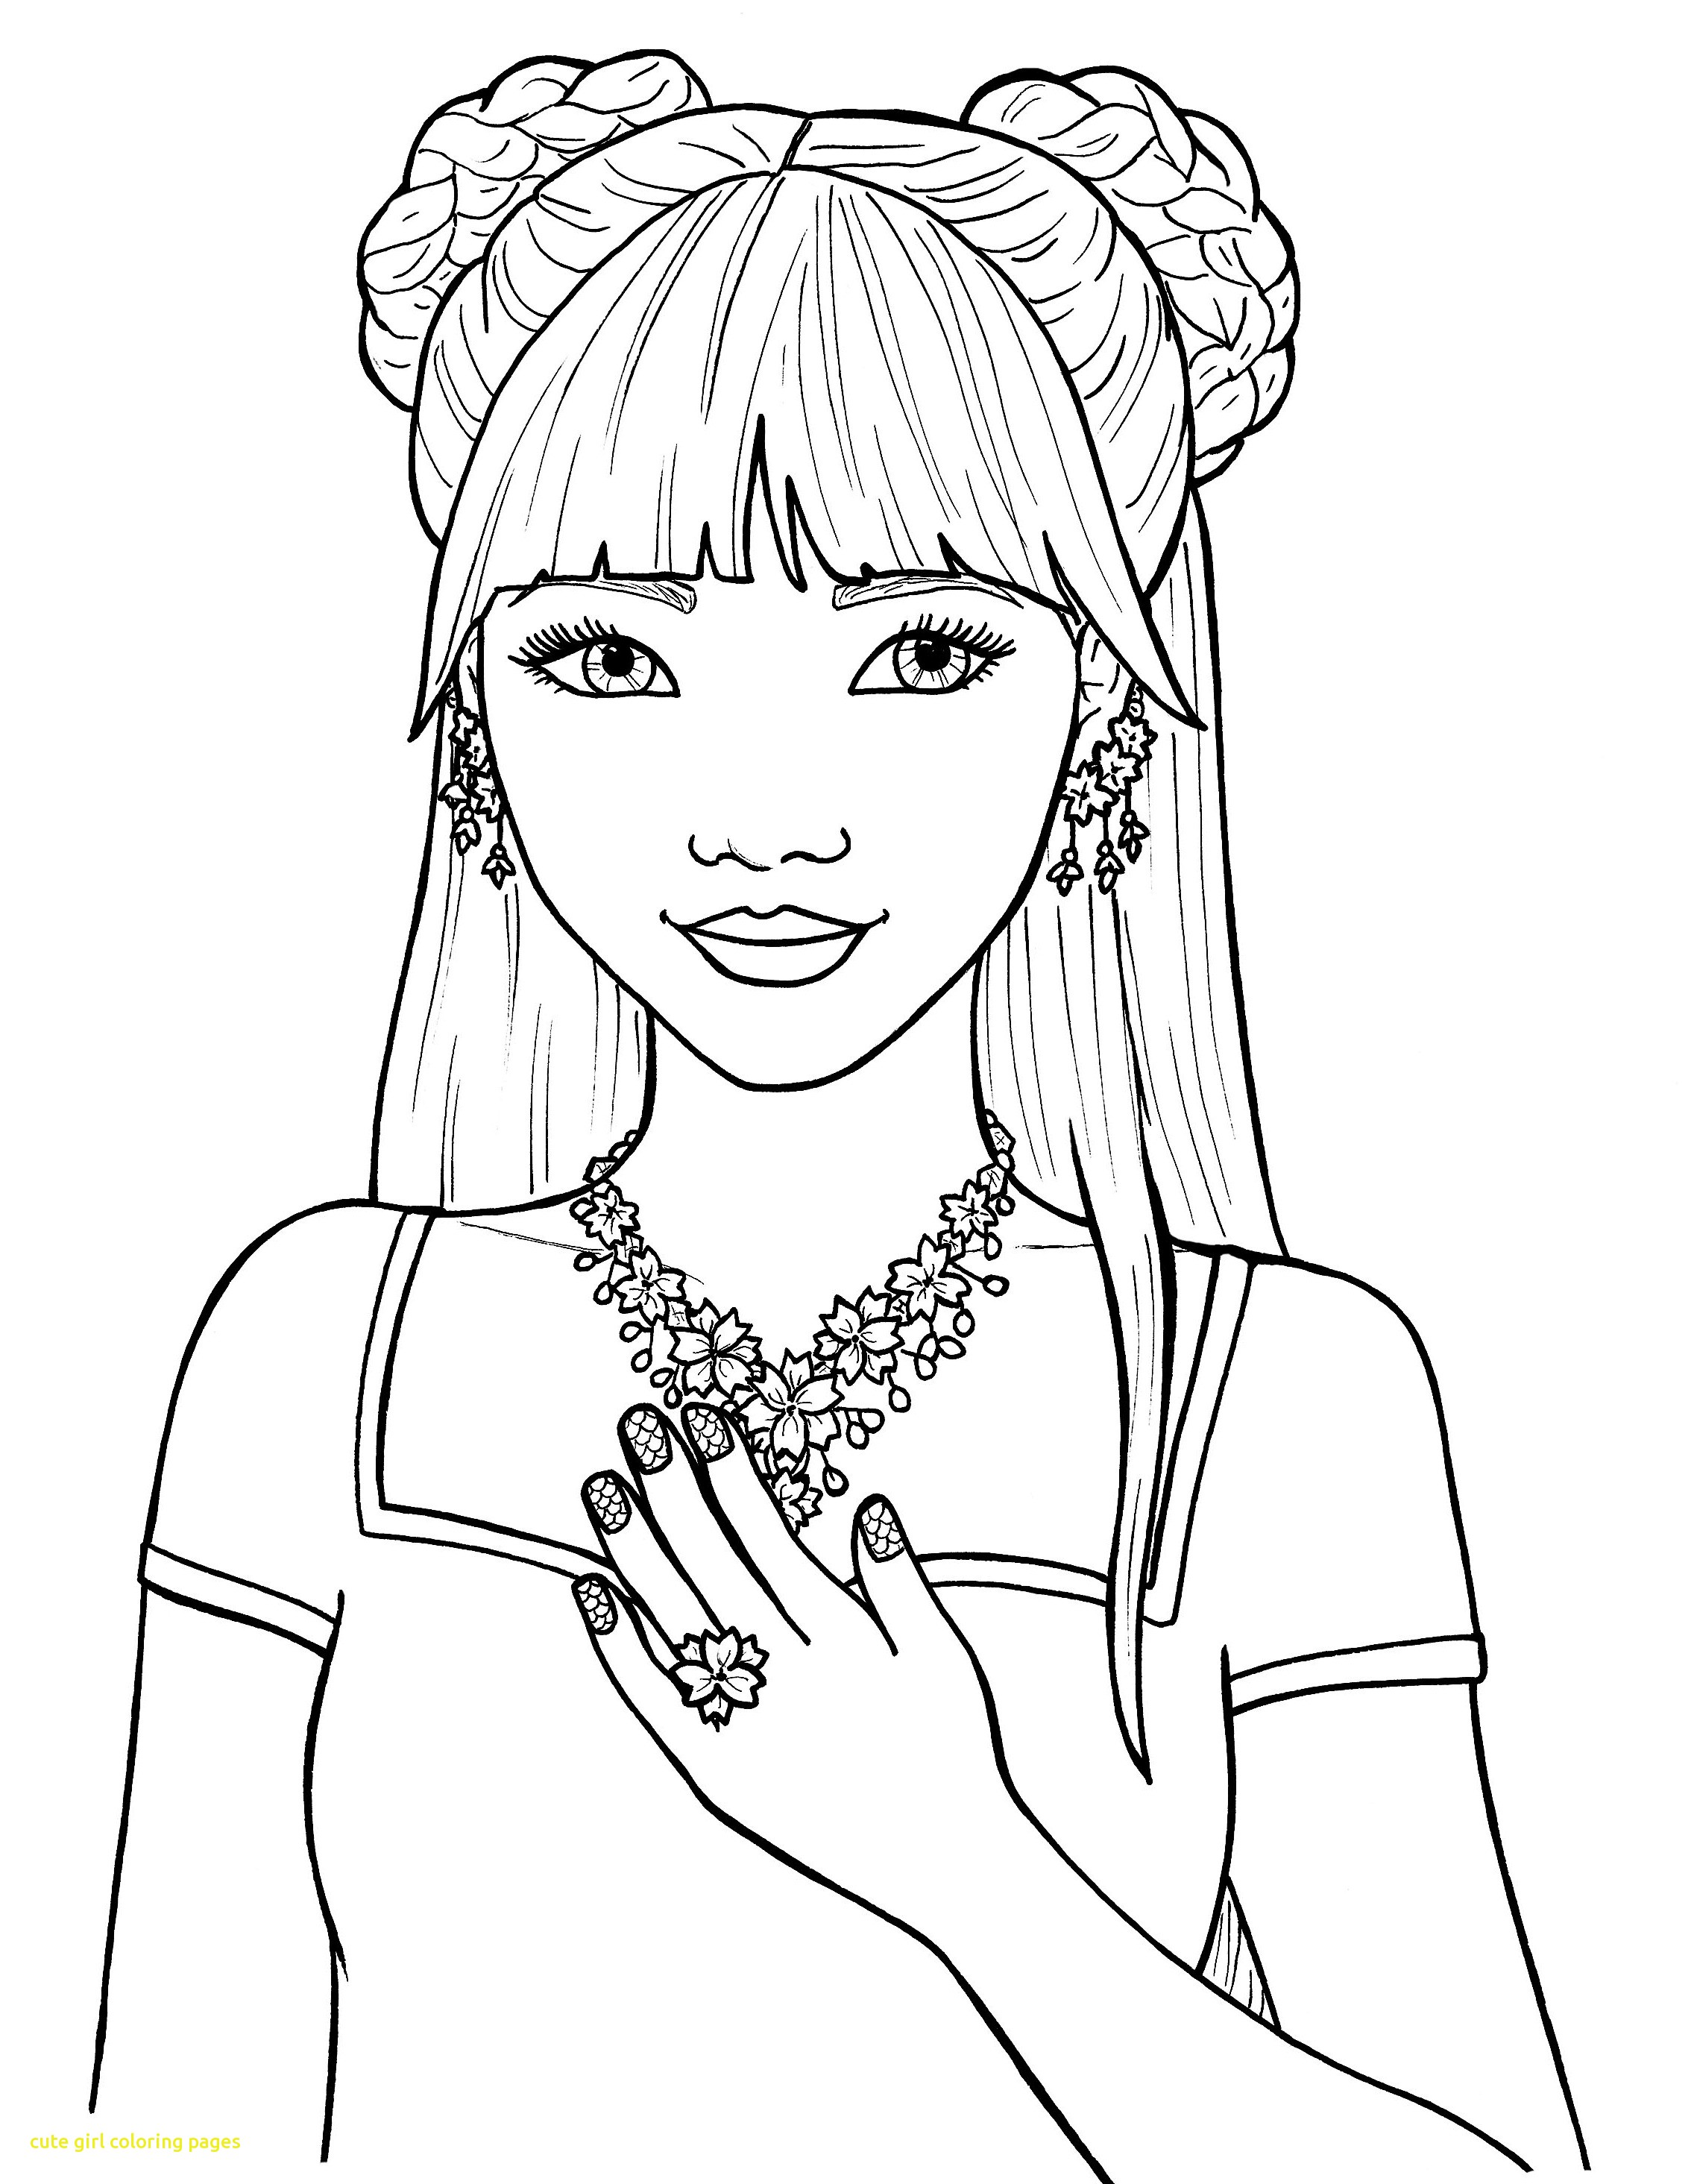 free coloring pages online coloring pages you can color on the computer free coloring free online pages